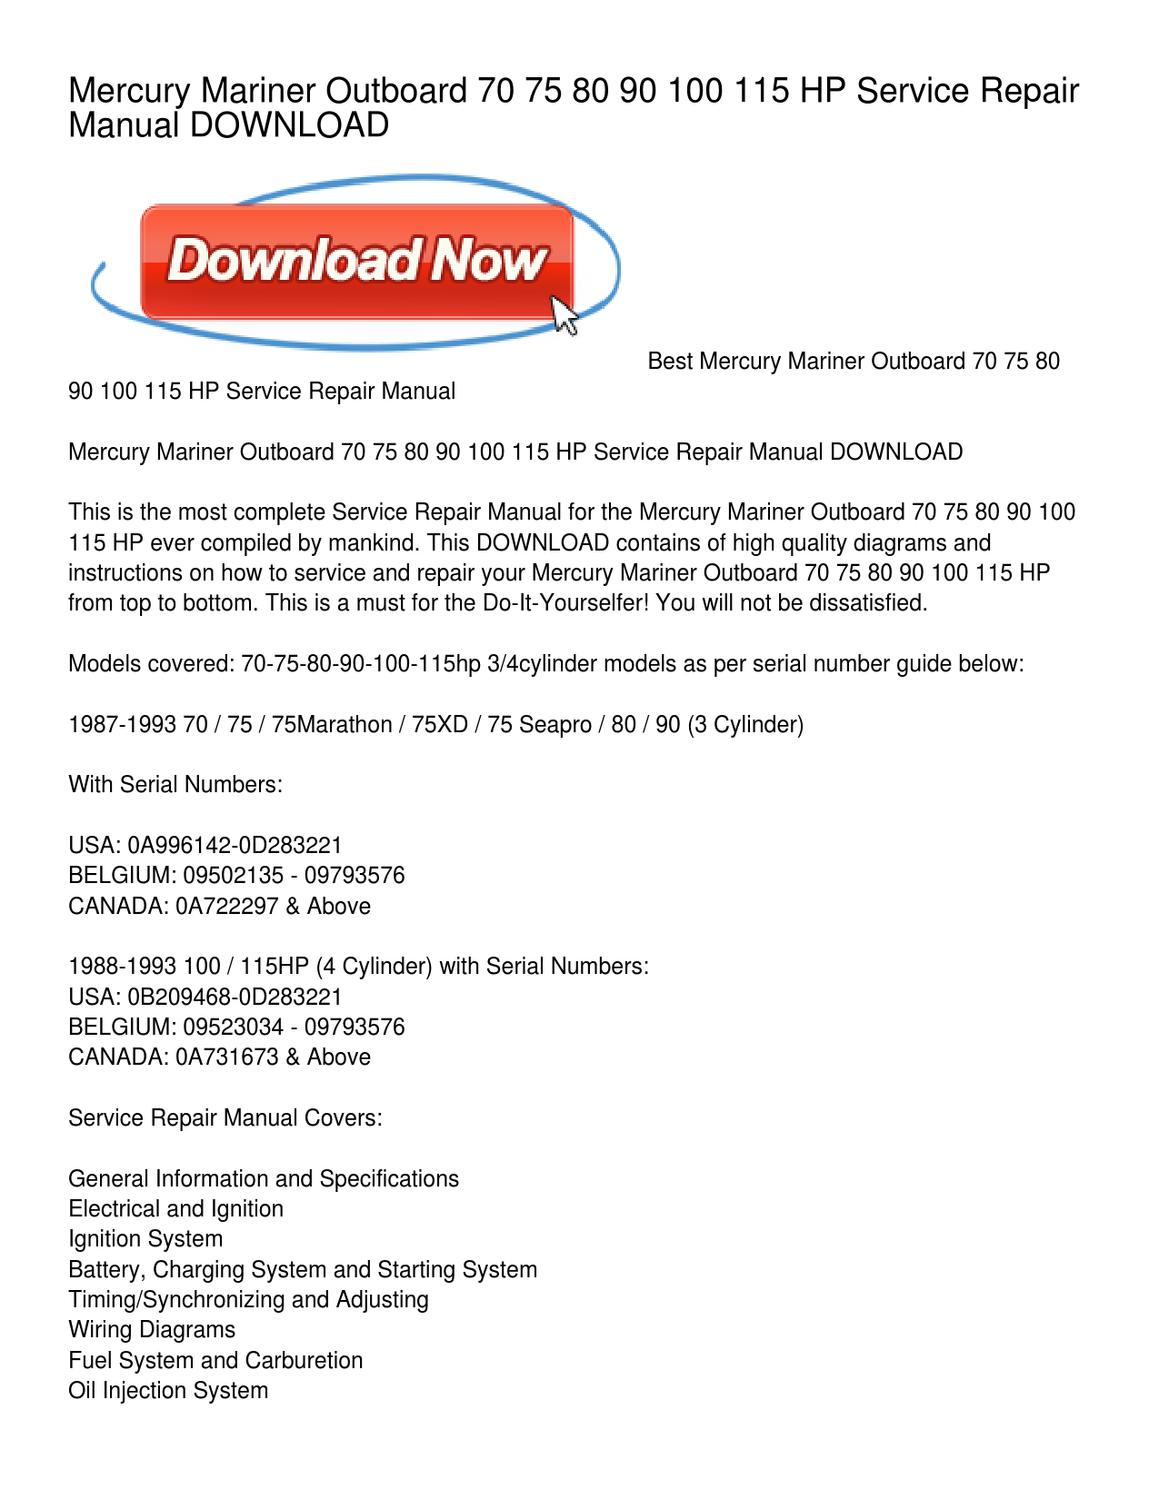 mercury mariner outboard 70 75 80 90 100 115 hp service repair S&W Pistol Serial Number Lookup mercury mariner outboard 70 75 80 90 100 115 hp service repair manual download by joan head issuu